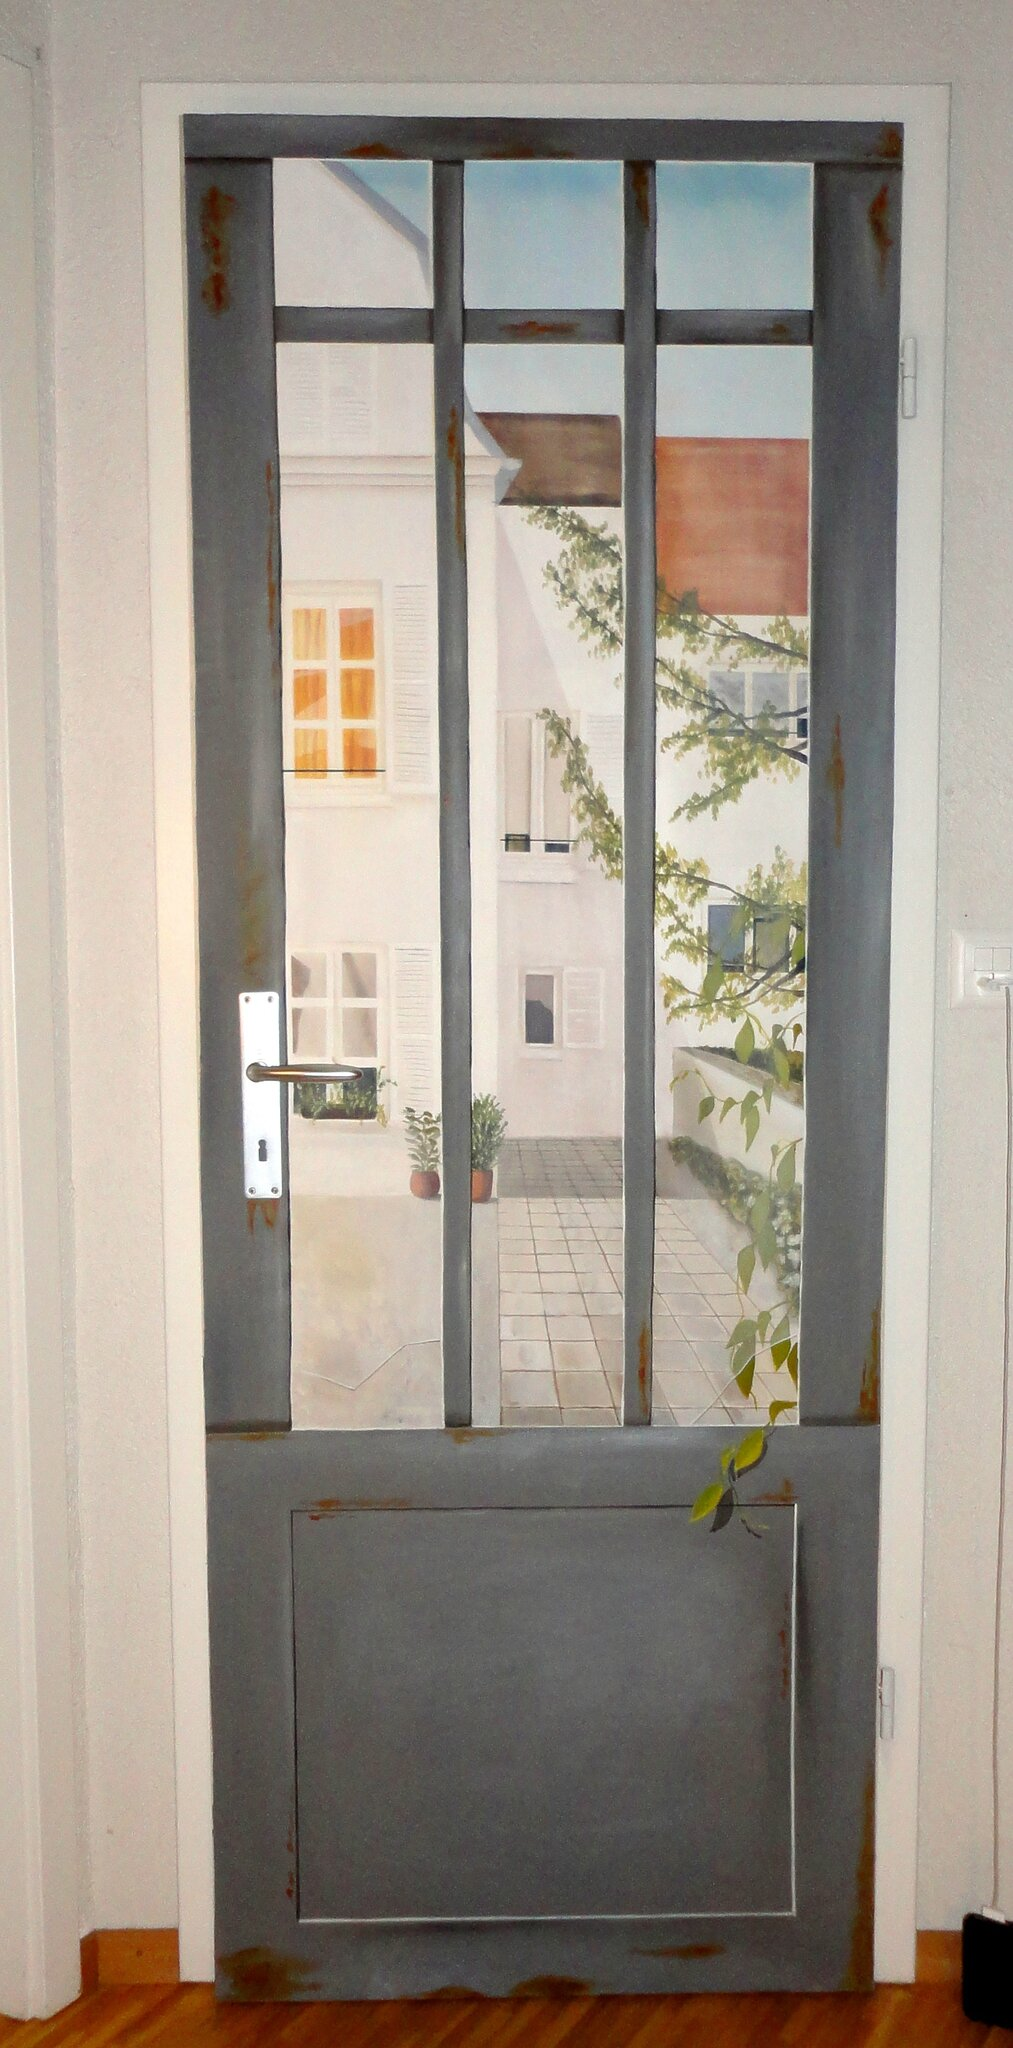 Sticker de porte trompe l 39 oeil d co porte orientale art for Trompe l oeil interieur